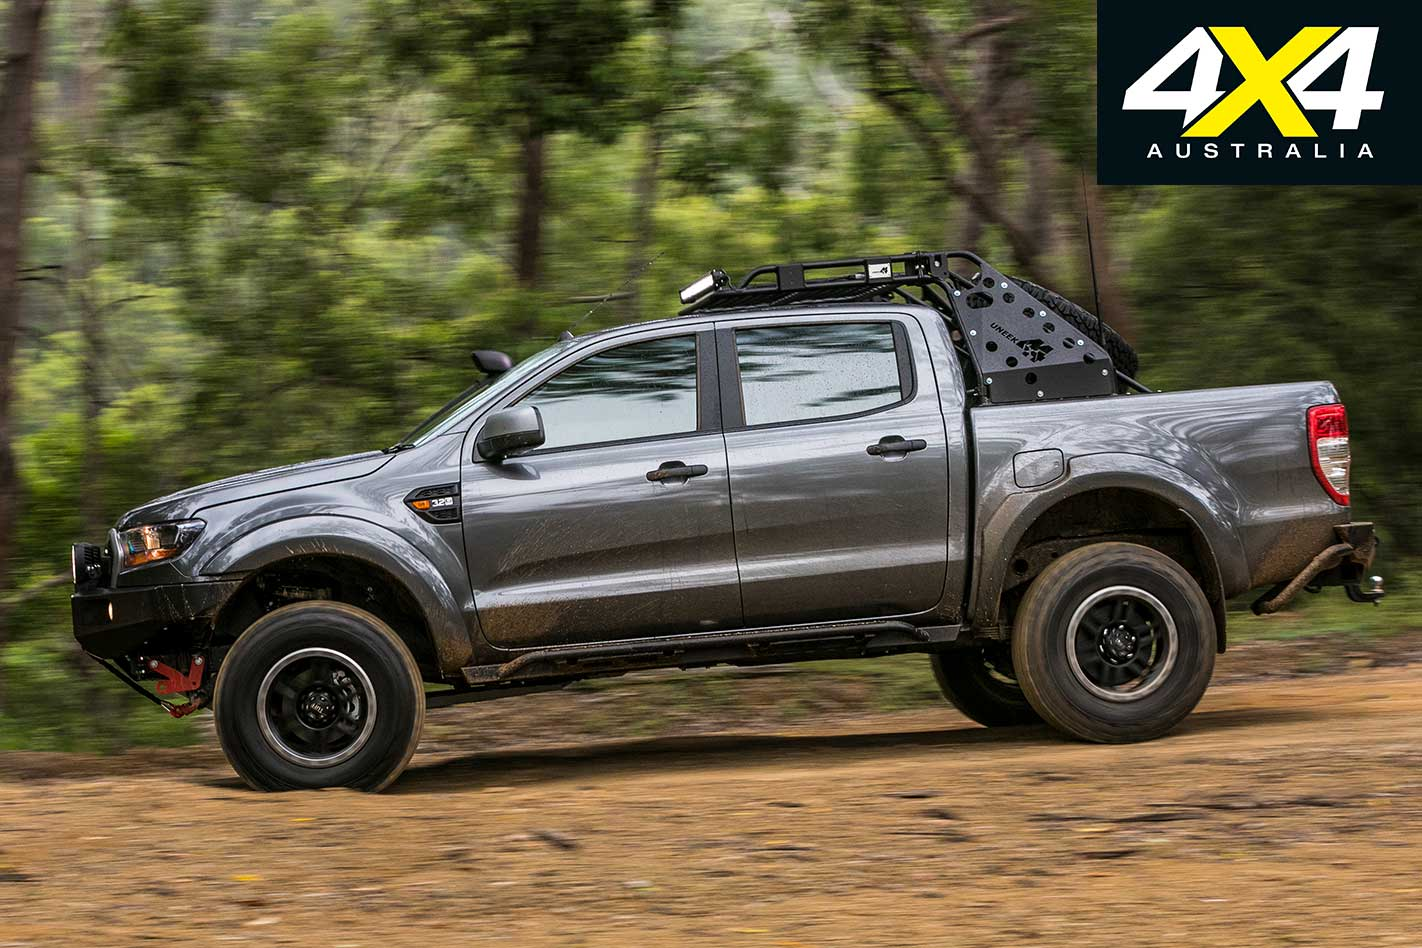 Since 2011 the ranger has become synonymous with the surge in 4x4 ute sales with the result being plenty of off road tourers using them as their preferred